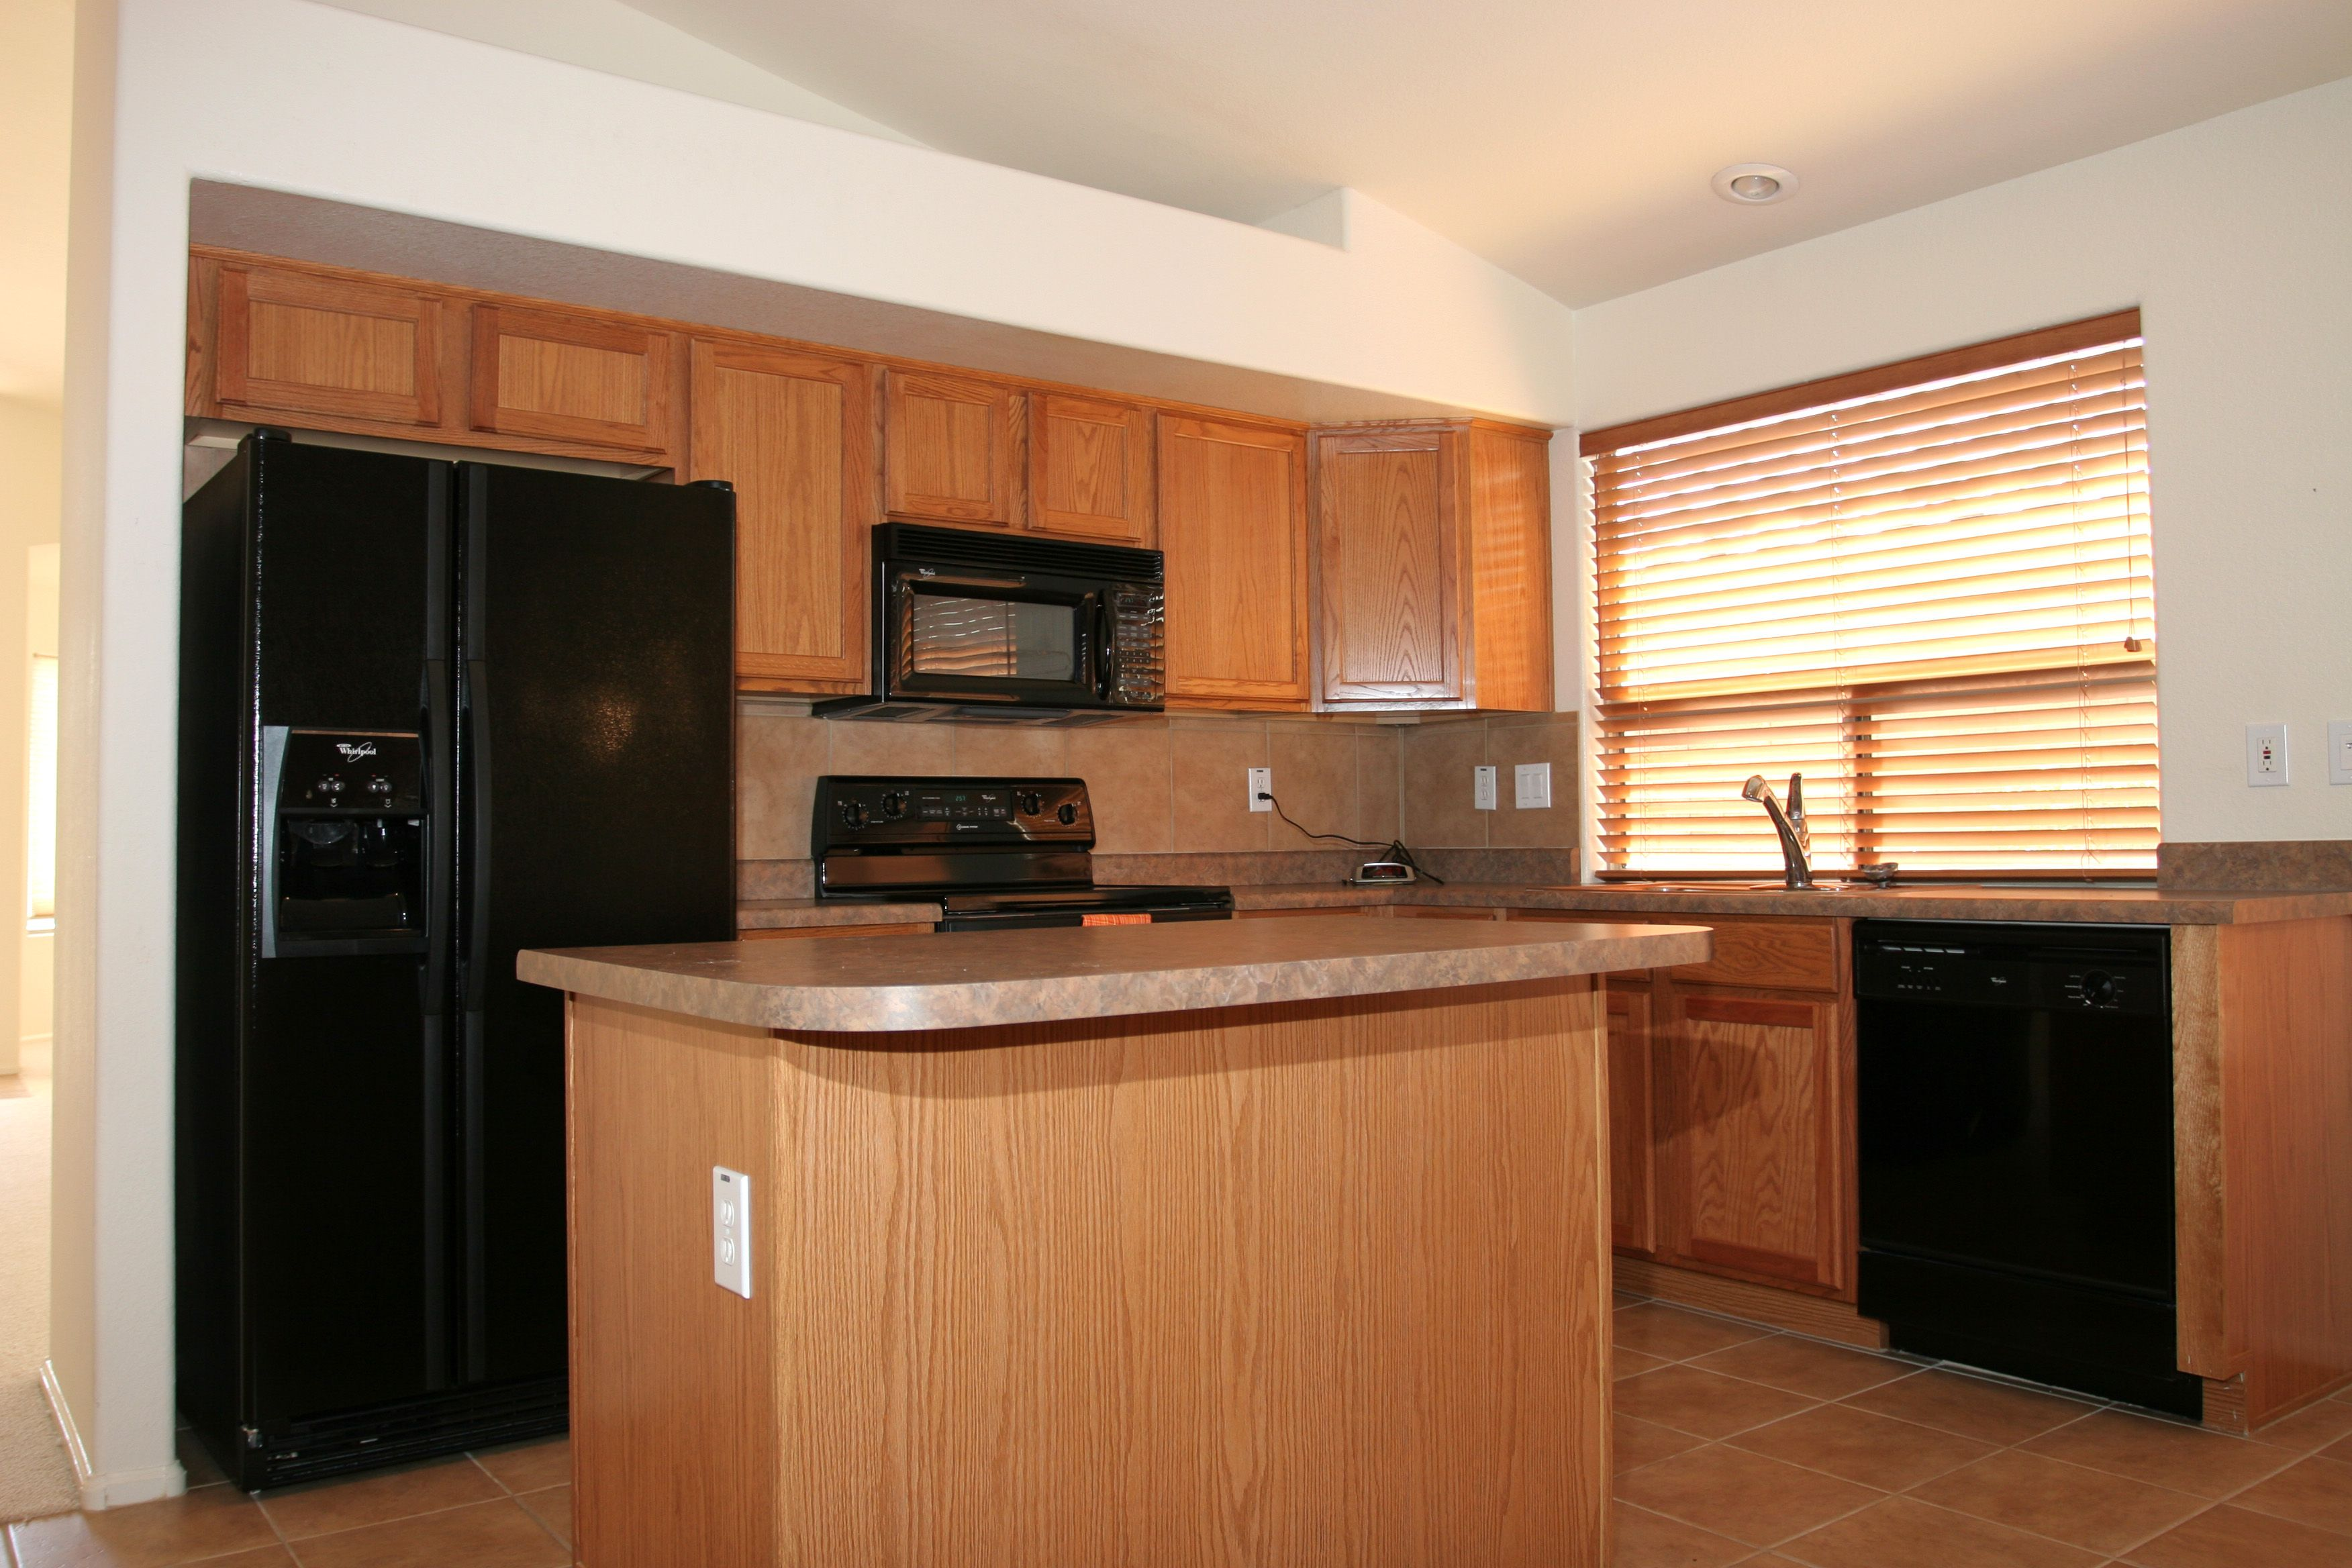 Kitchen black appliances photo gallery homes of the for Kitchen cabinets with black appliances